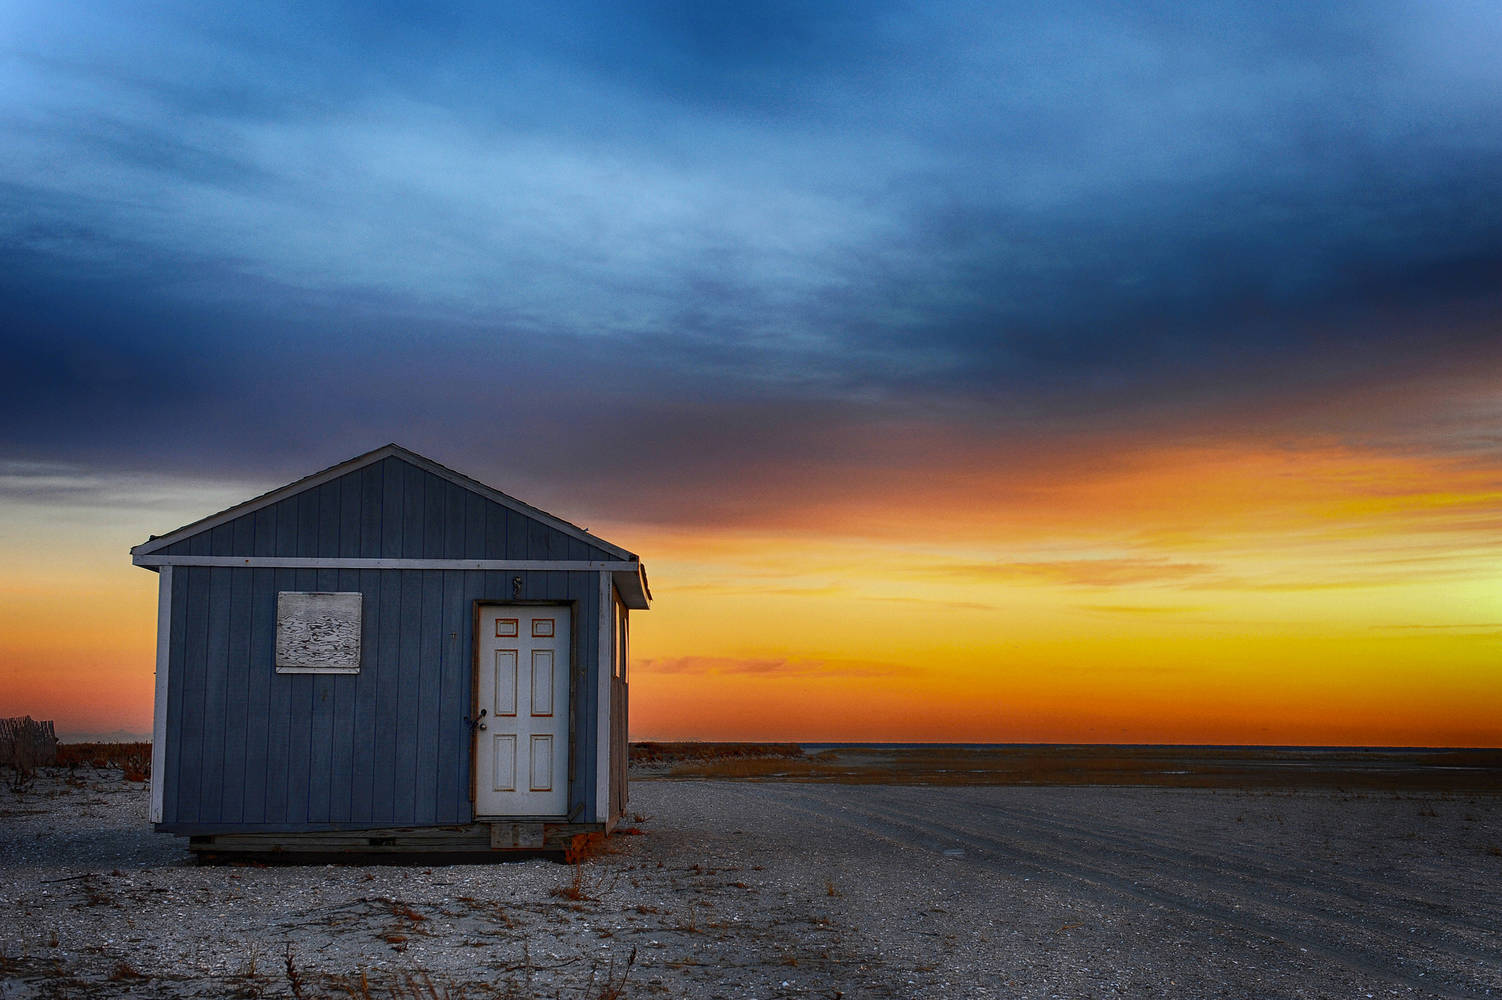 West End Shack by Dawn Reilly